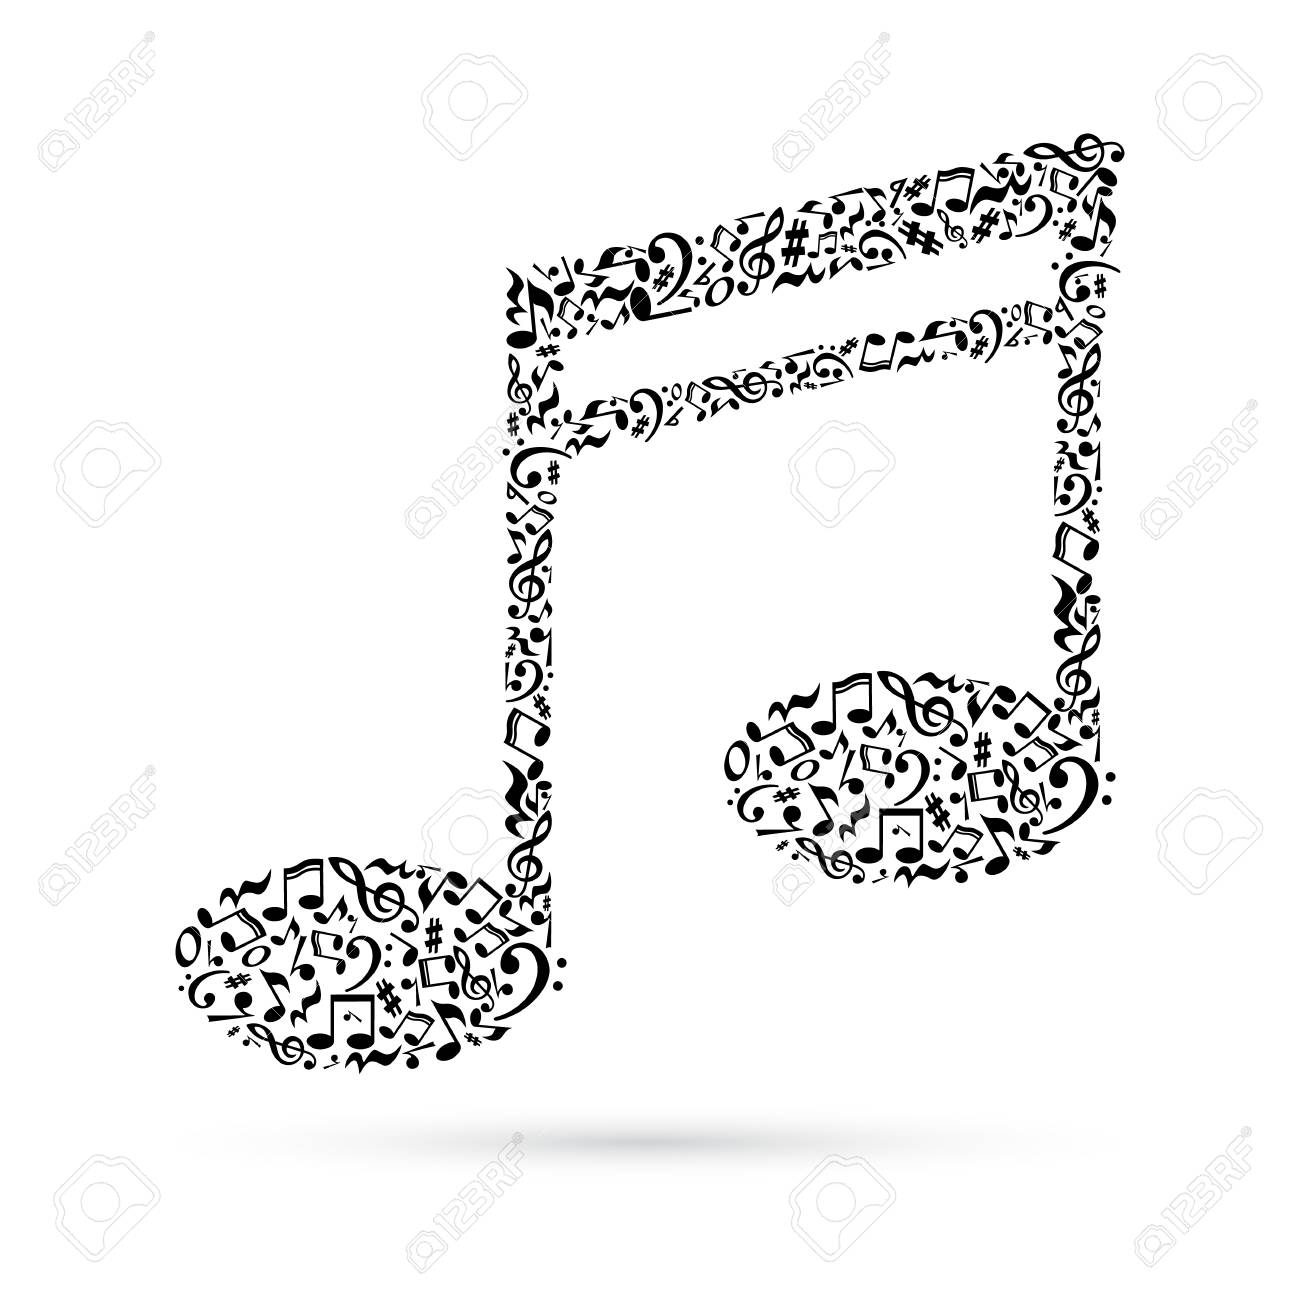 Music Note Made Of Music Notes On White Background Black Notes